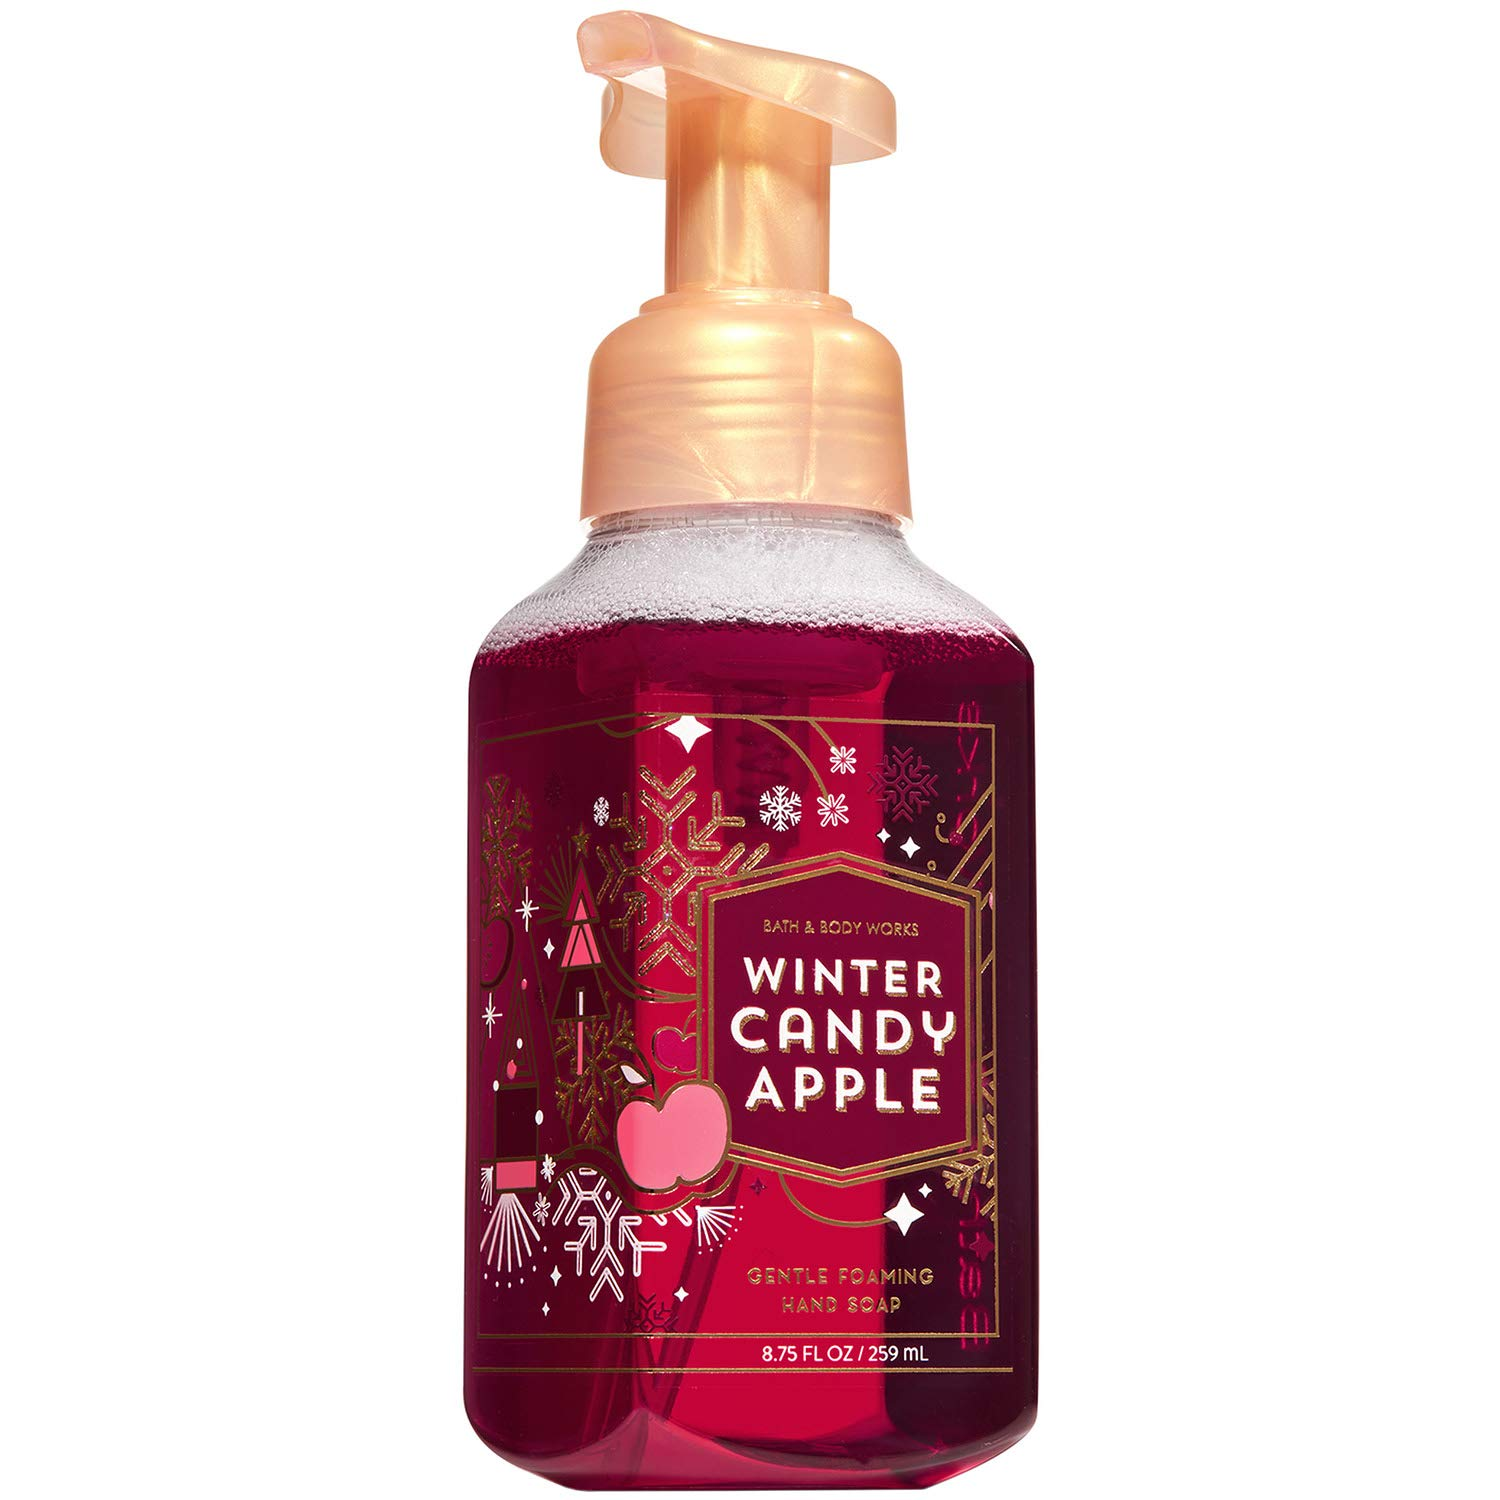 Bath and Body Works WINTER CANDY APPLE Gentle Foaming Hand Soap 8.75 Fluid Ounce (2018 Edition)